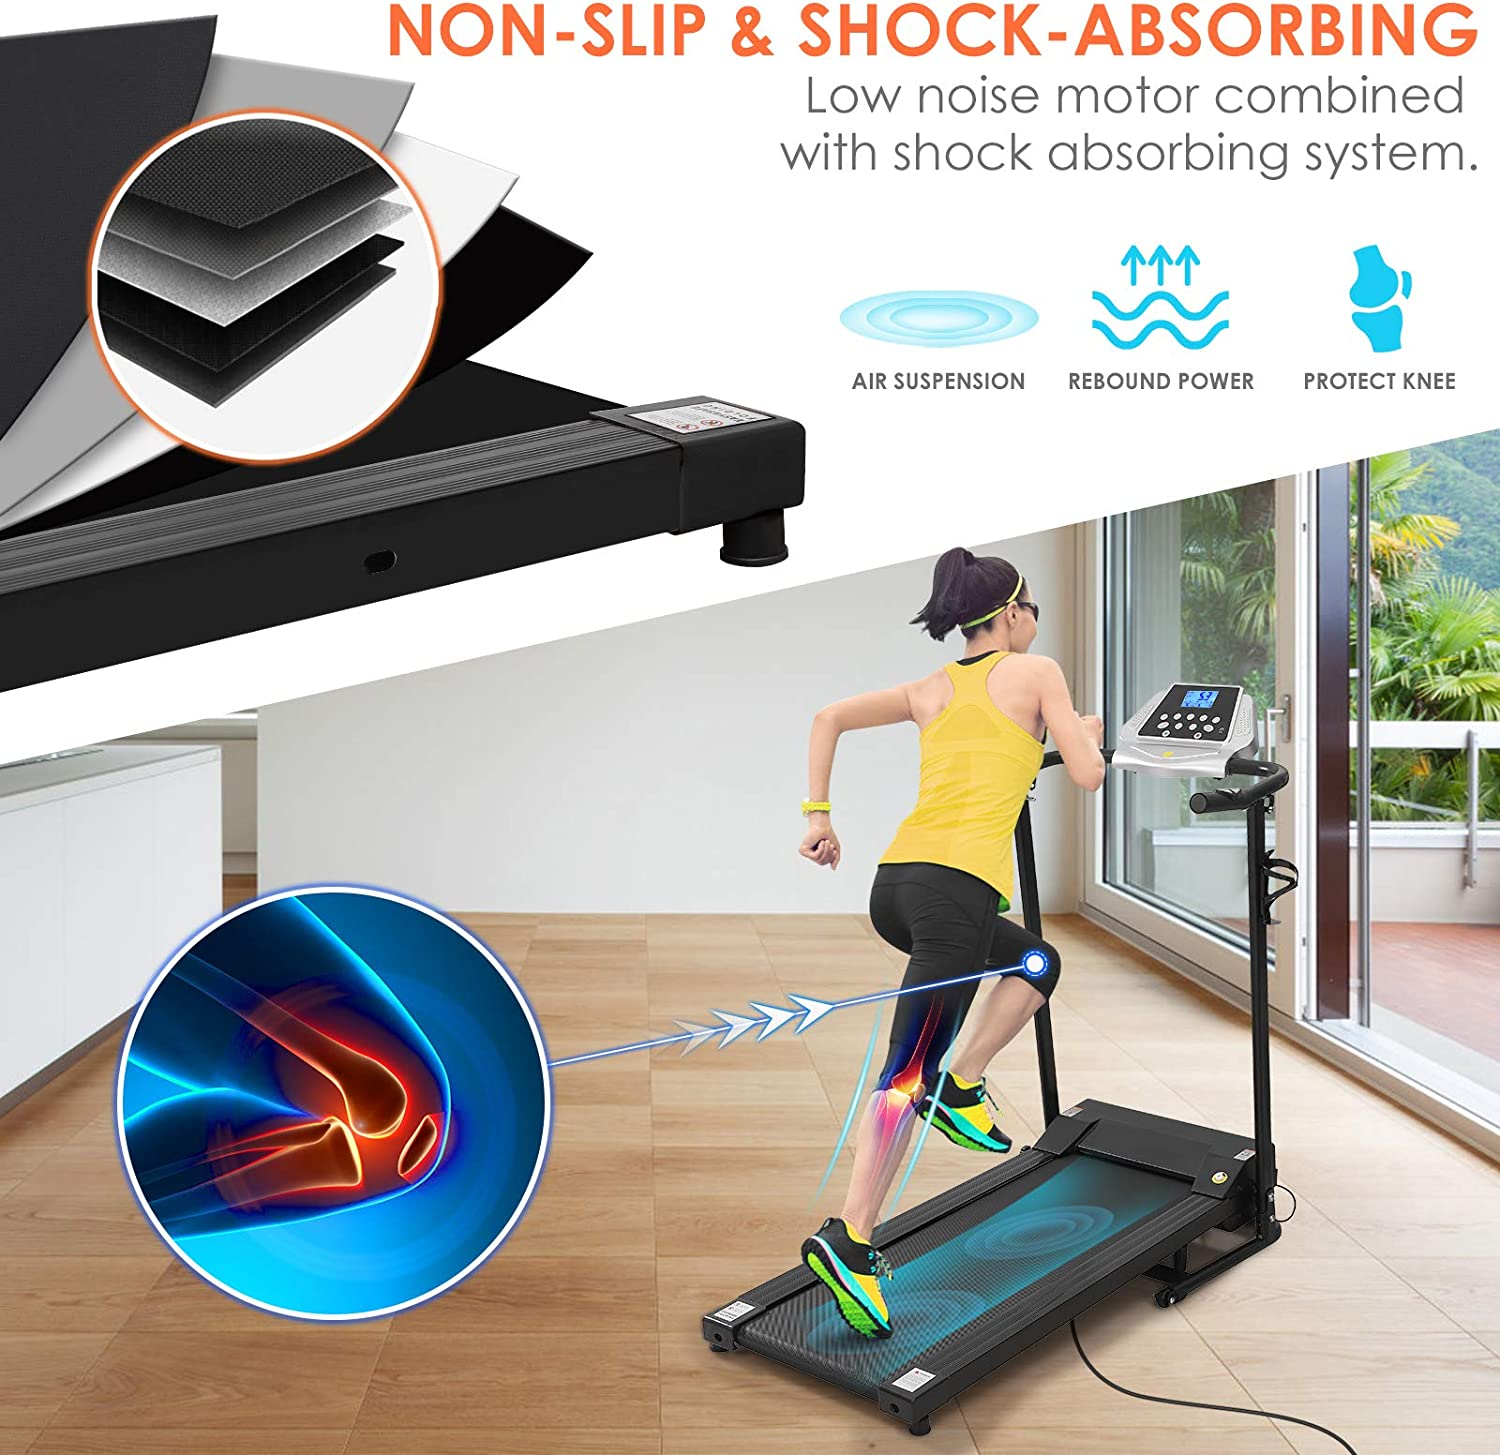 BESPORTBLE Treadmill Electric Folding Treadmill with LCD Display 12 Preset Programs Motorized Running Jogging Machine for Home Gym Office Workout (Shipping from US, Delivery Within 3-6 Working Days)